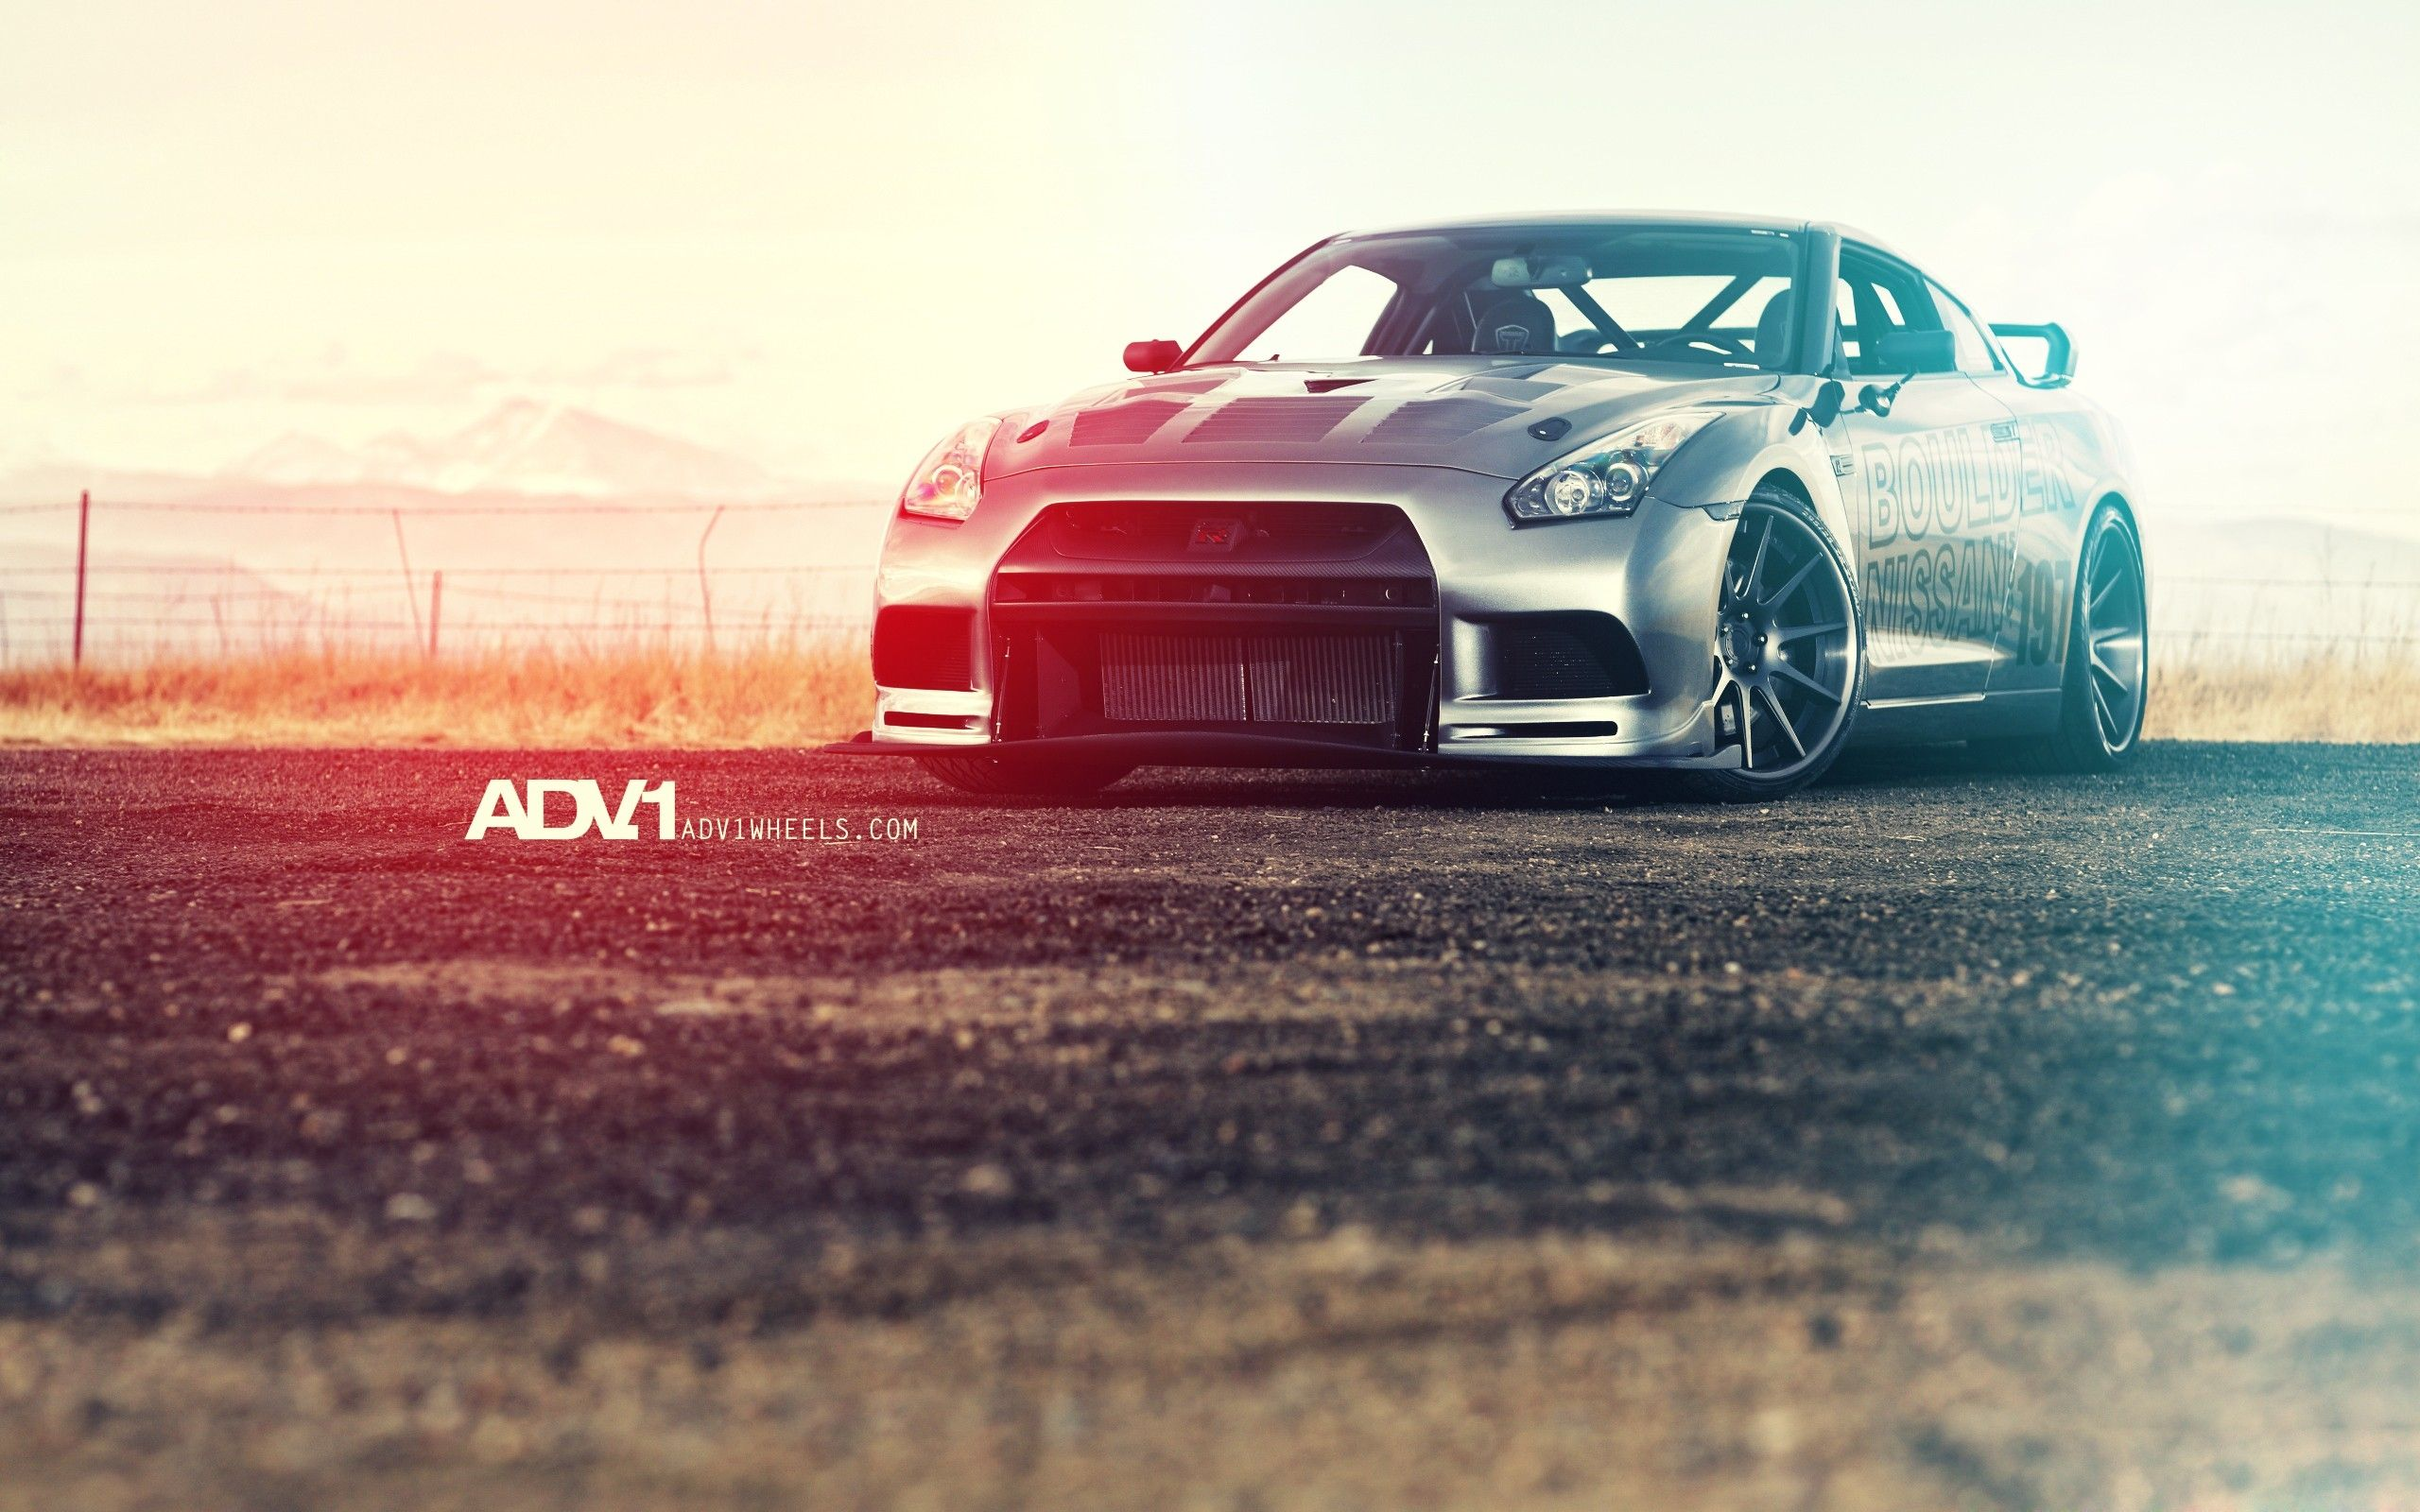 2013 Nissan GT R Photo Wallpaper is hd wallpaper for